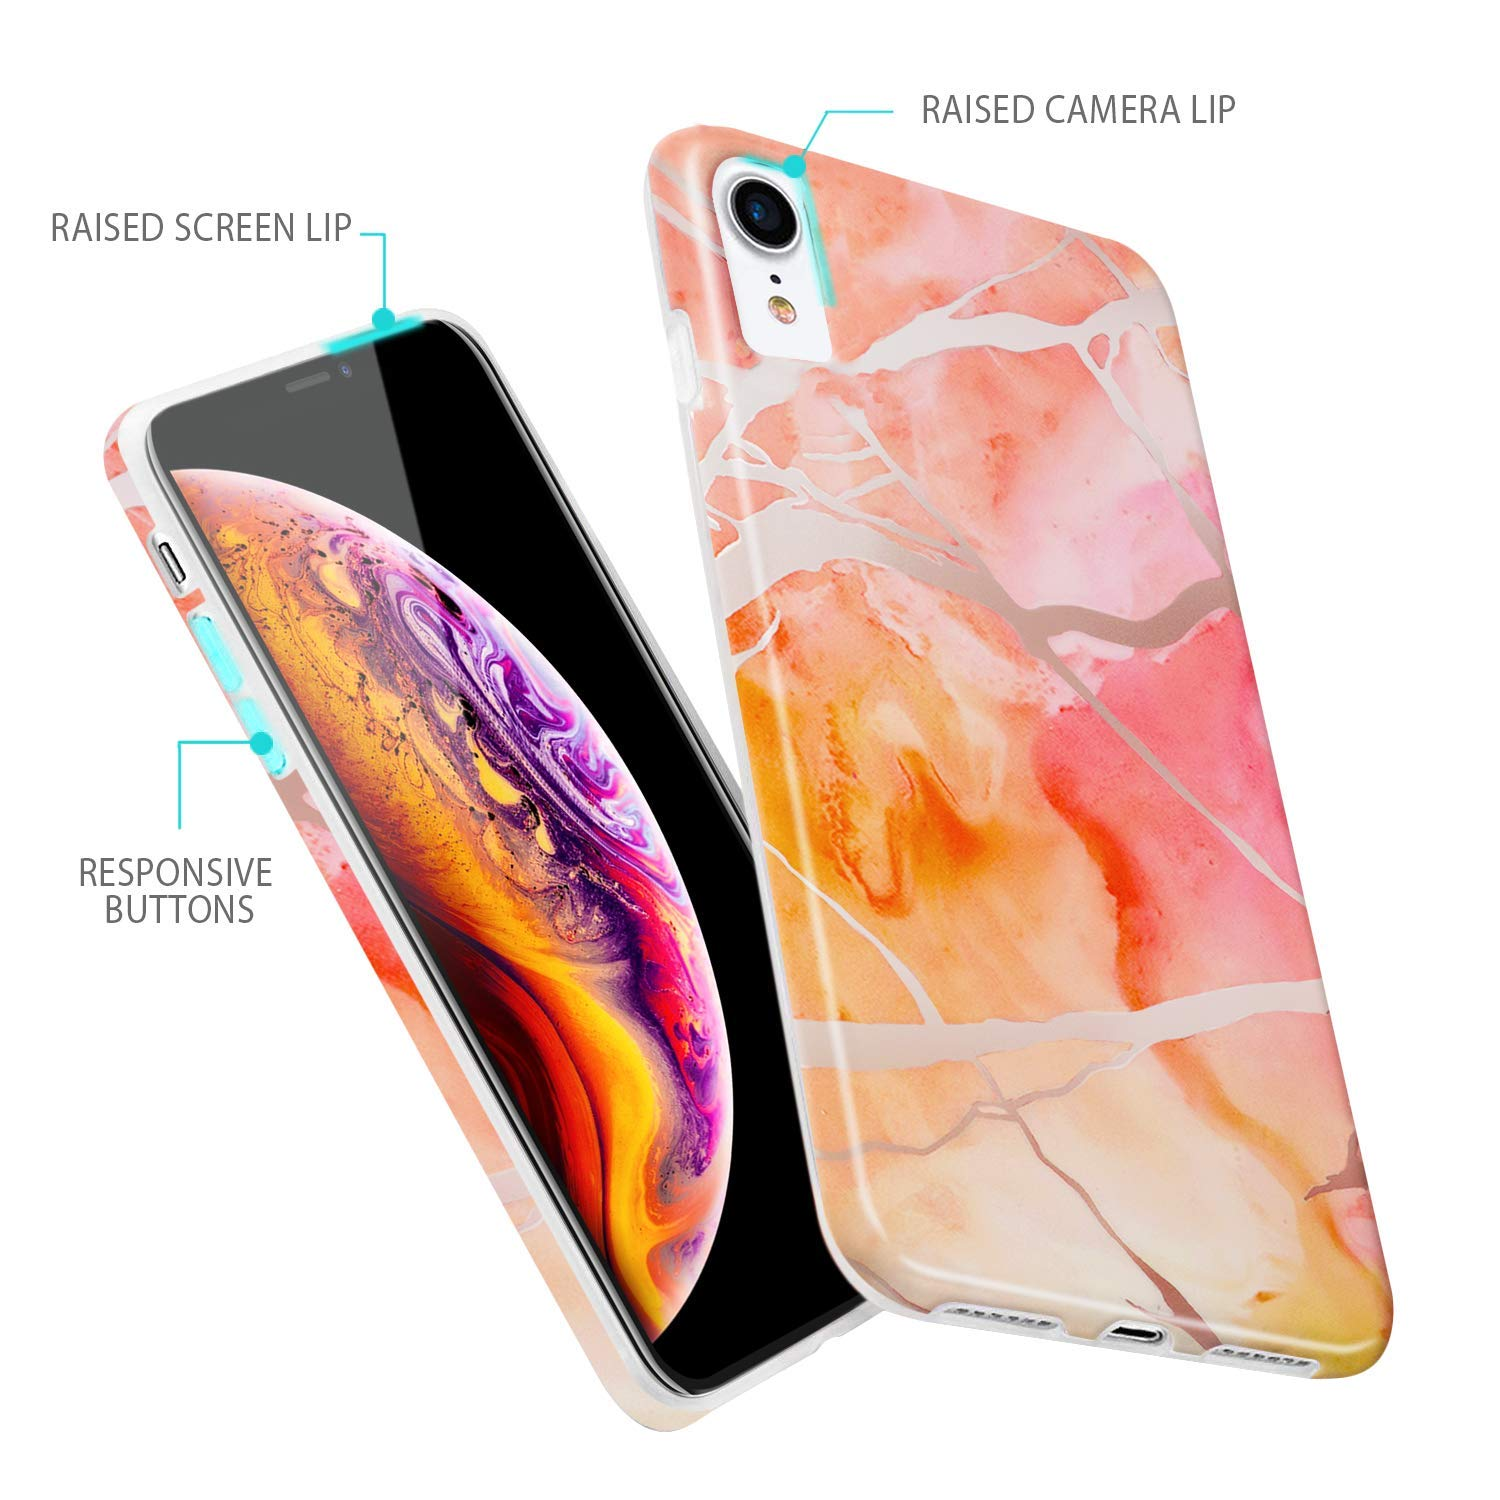 2018 Marble Case, Slim Soft Rubber with Marble Pattern, Glossy Silicone Cover for iPhone Xs Max